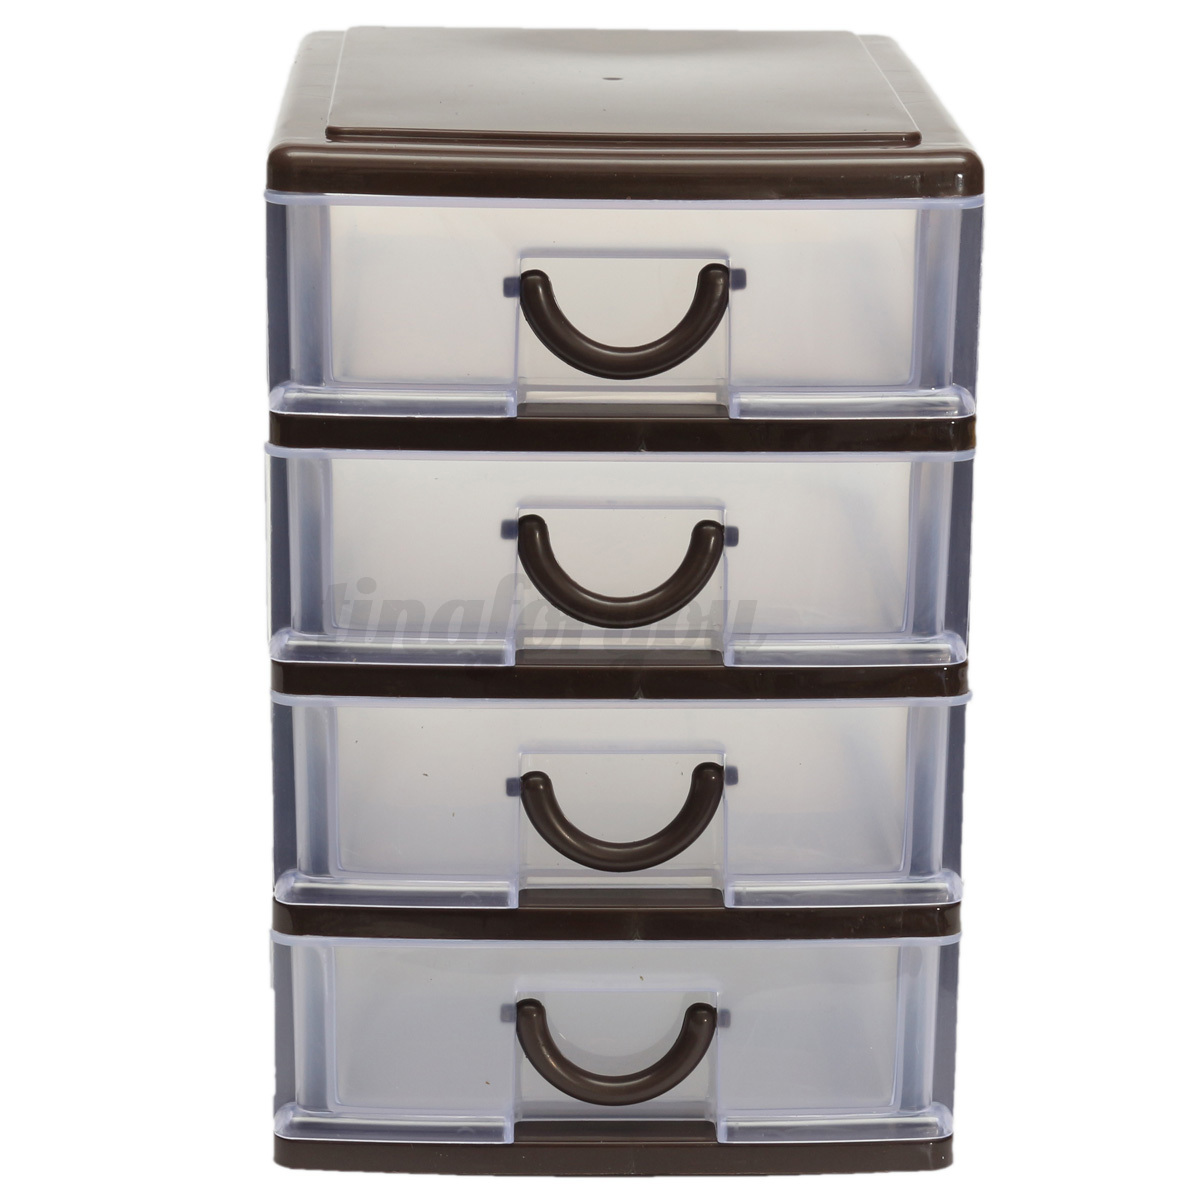 ... Makeup Storage Solutions Bisley Collection Cabinet Container · Multi  Layer Desktop Organizer Drawer Box Storage Jewelry ...